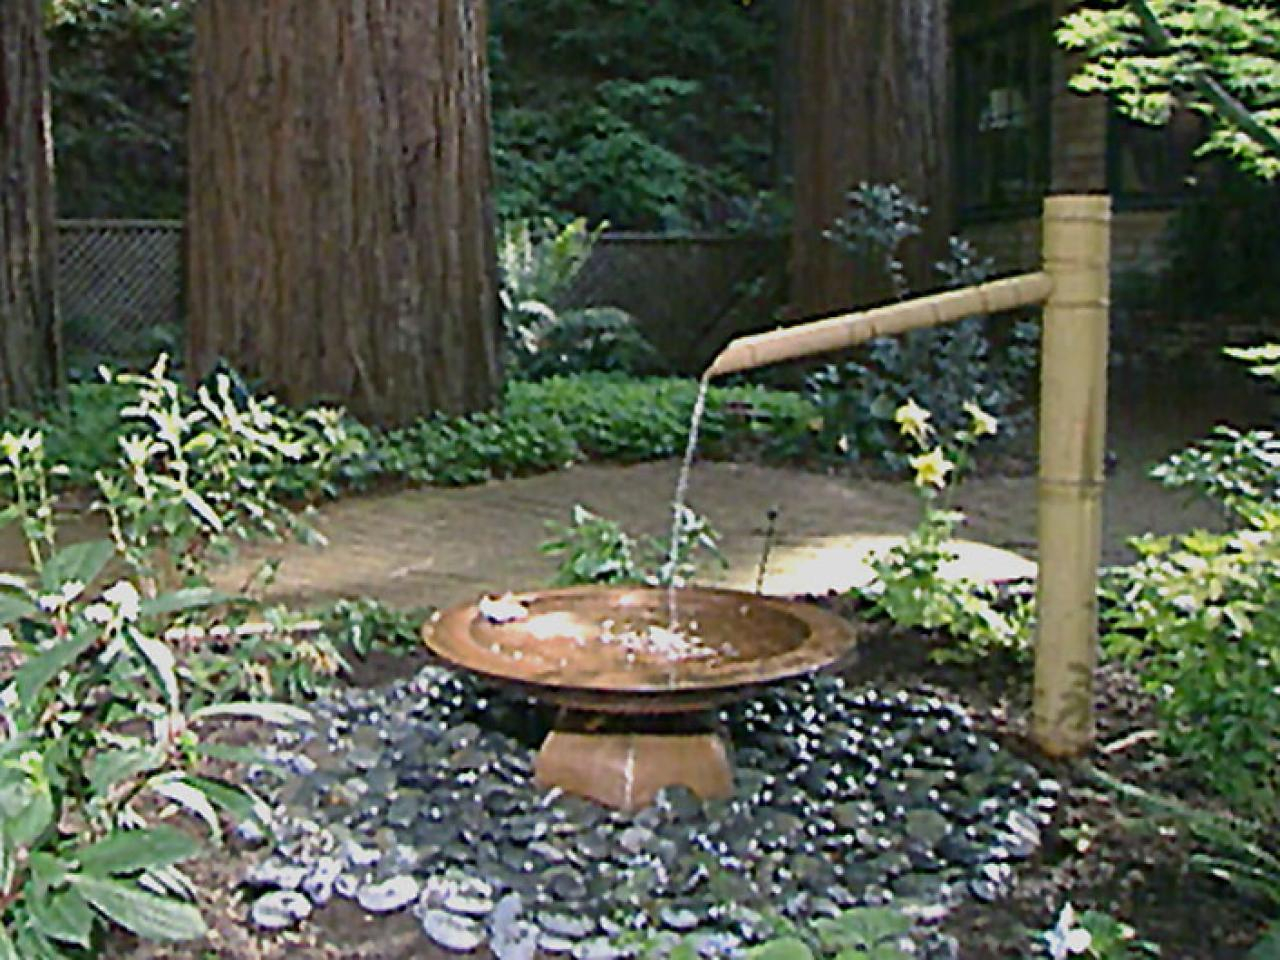 Bamboo Water Feature Ideas Designs Patio Backyard Porch Ideas Of in 10 Genius Ideas How to Makeover Small Backyard Water Feature Ideas